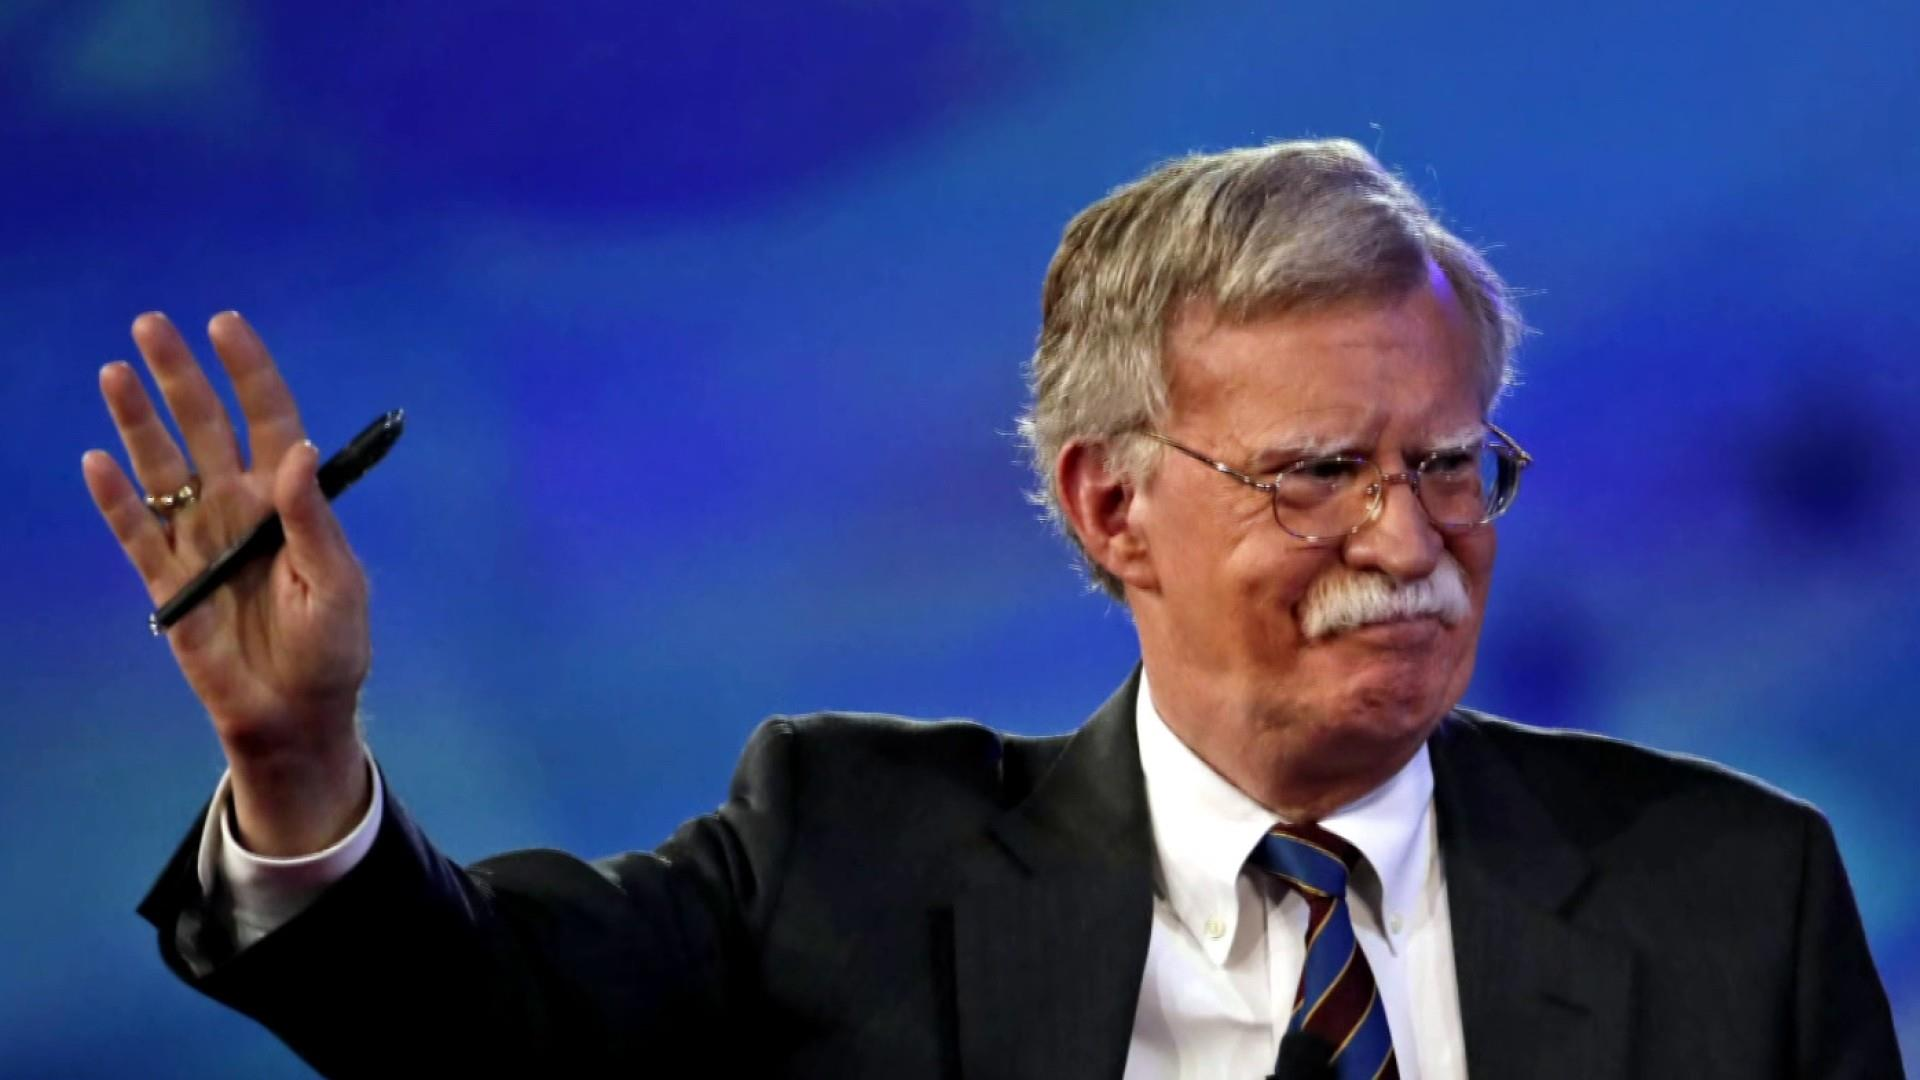 Breaking: Bolton's team believes White House made copies of his book